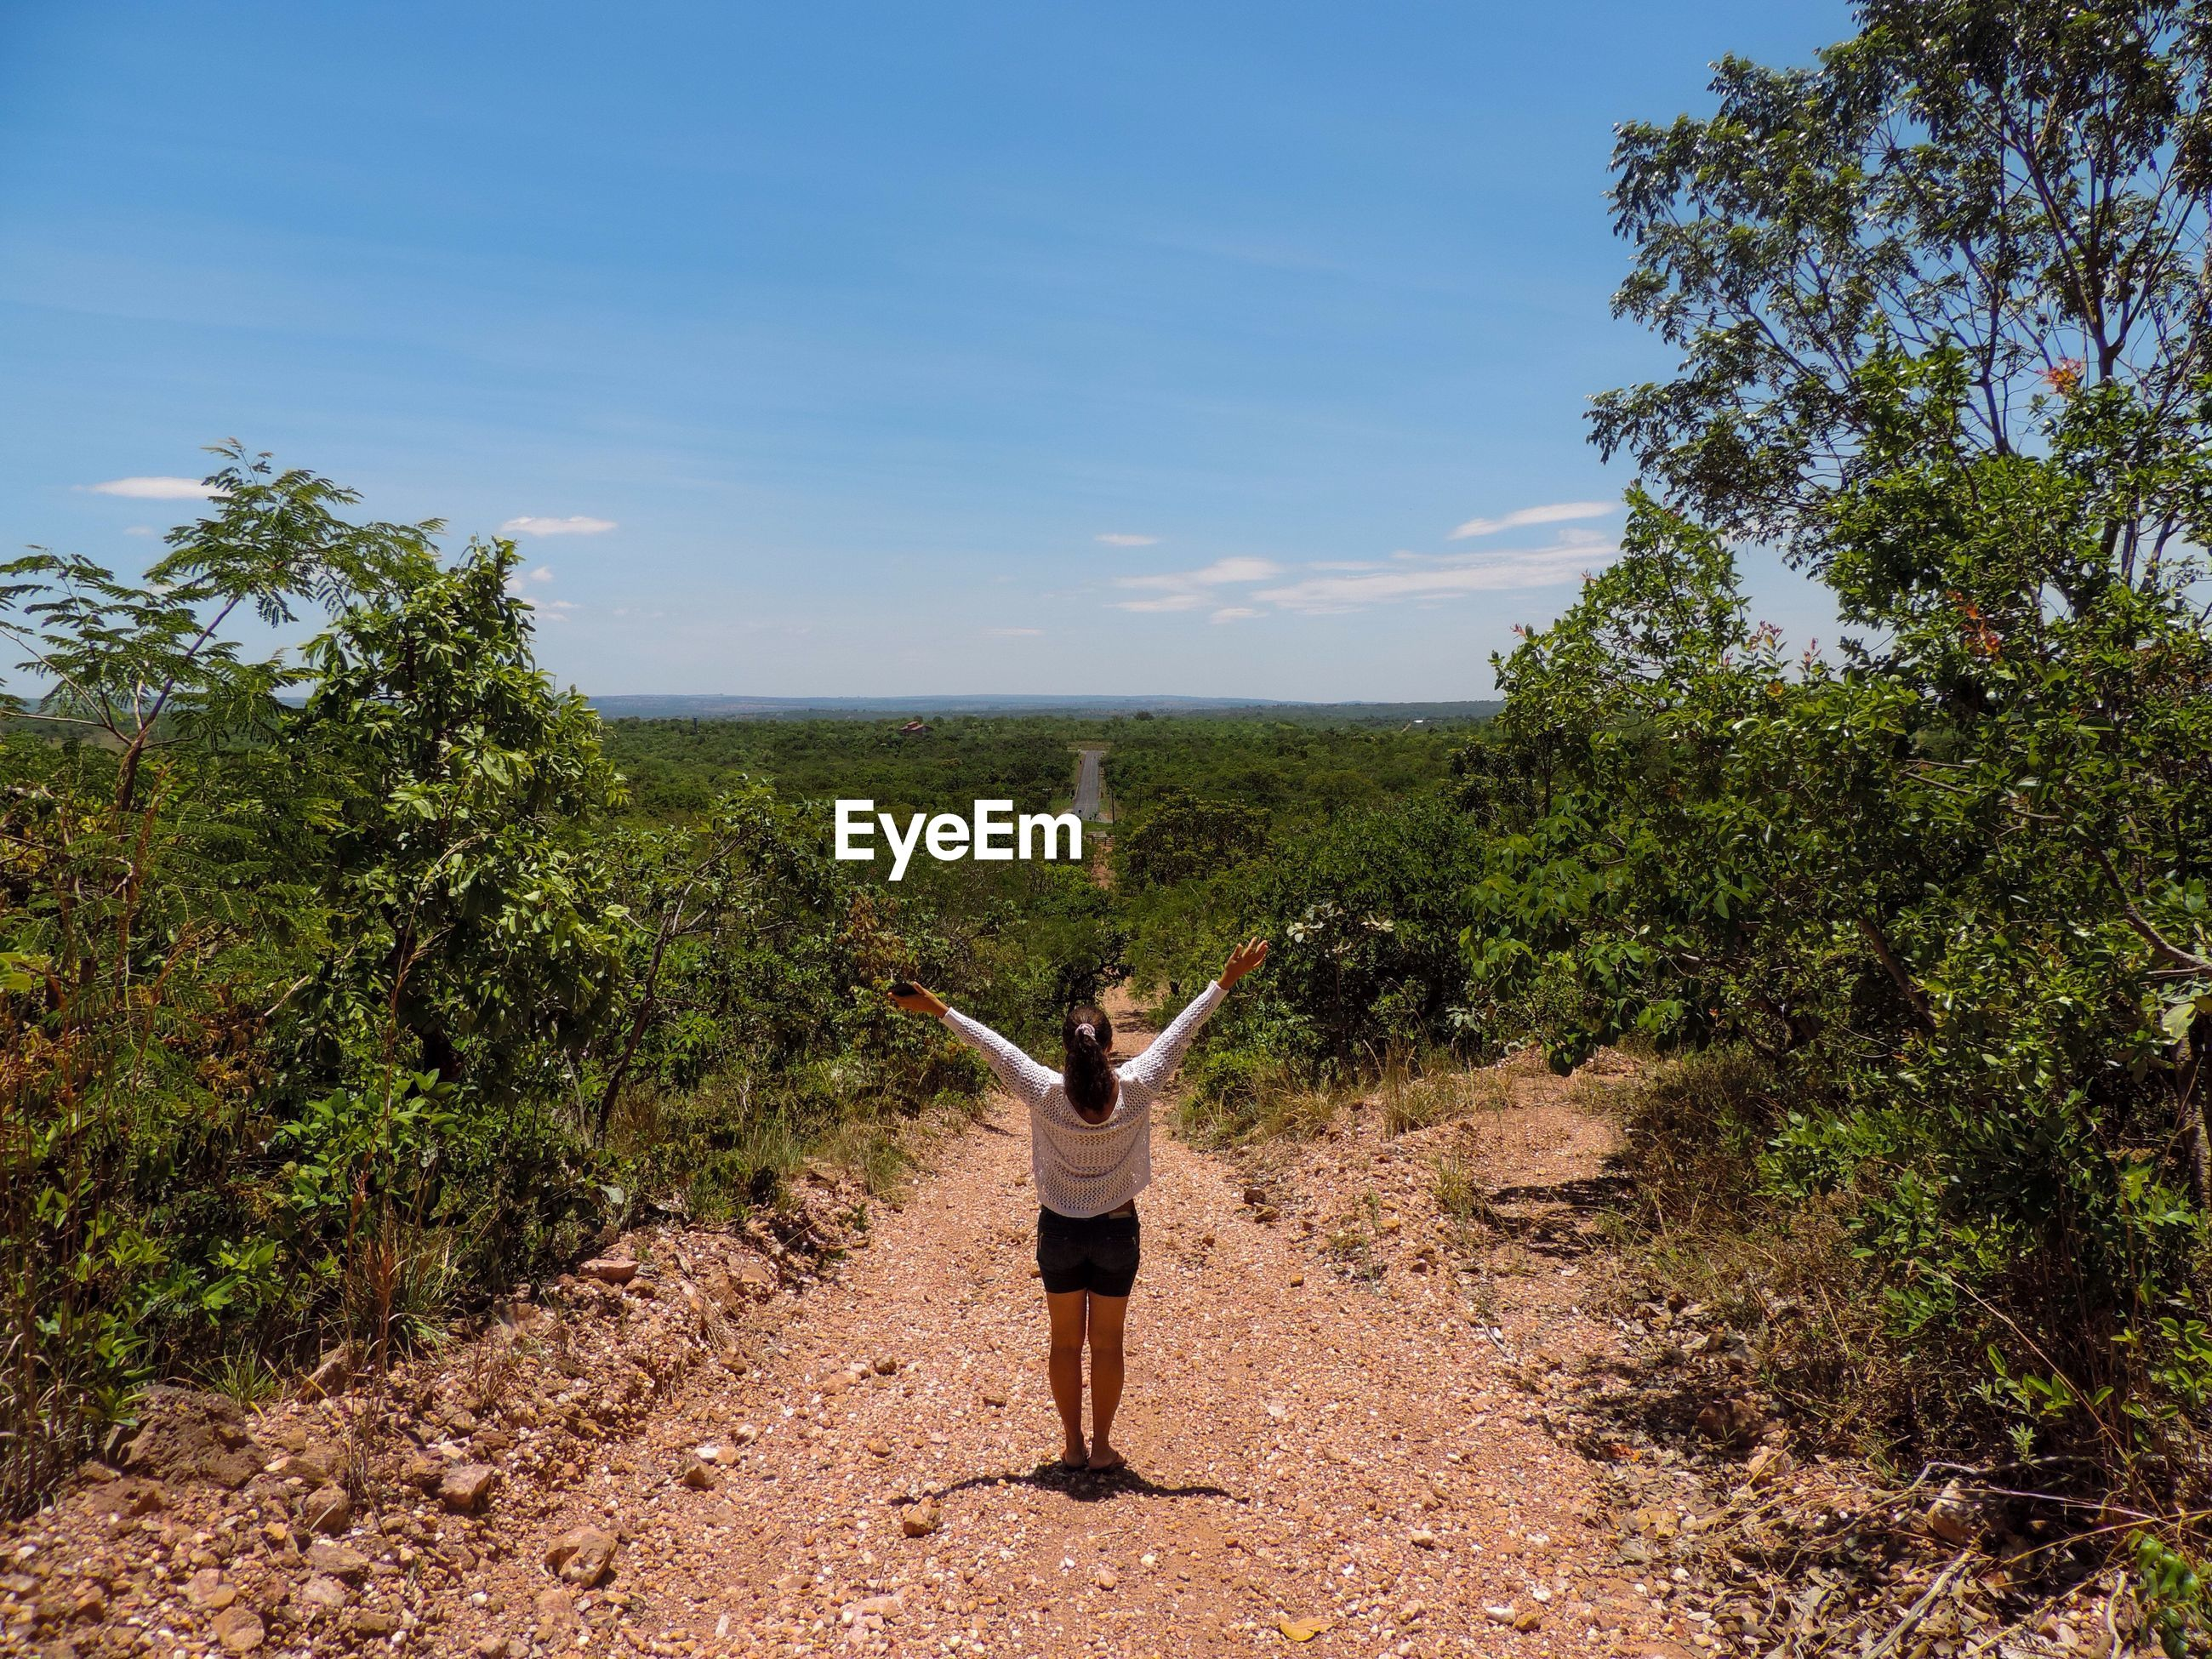 Rear view full length of woman with arms raised amidst trees on dirt road